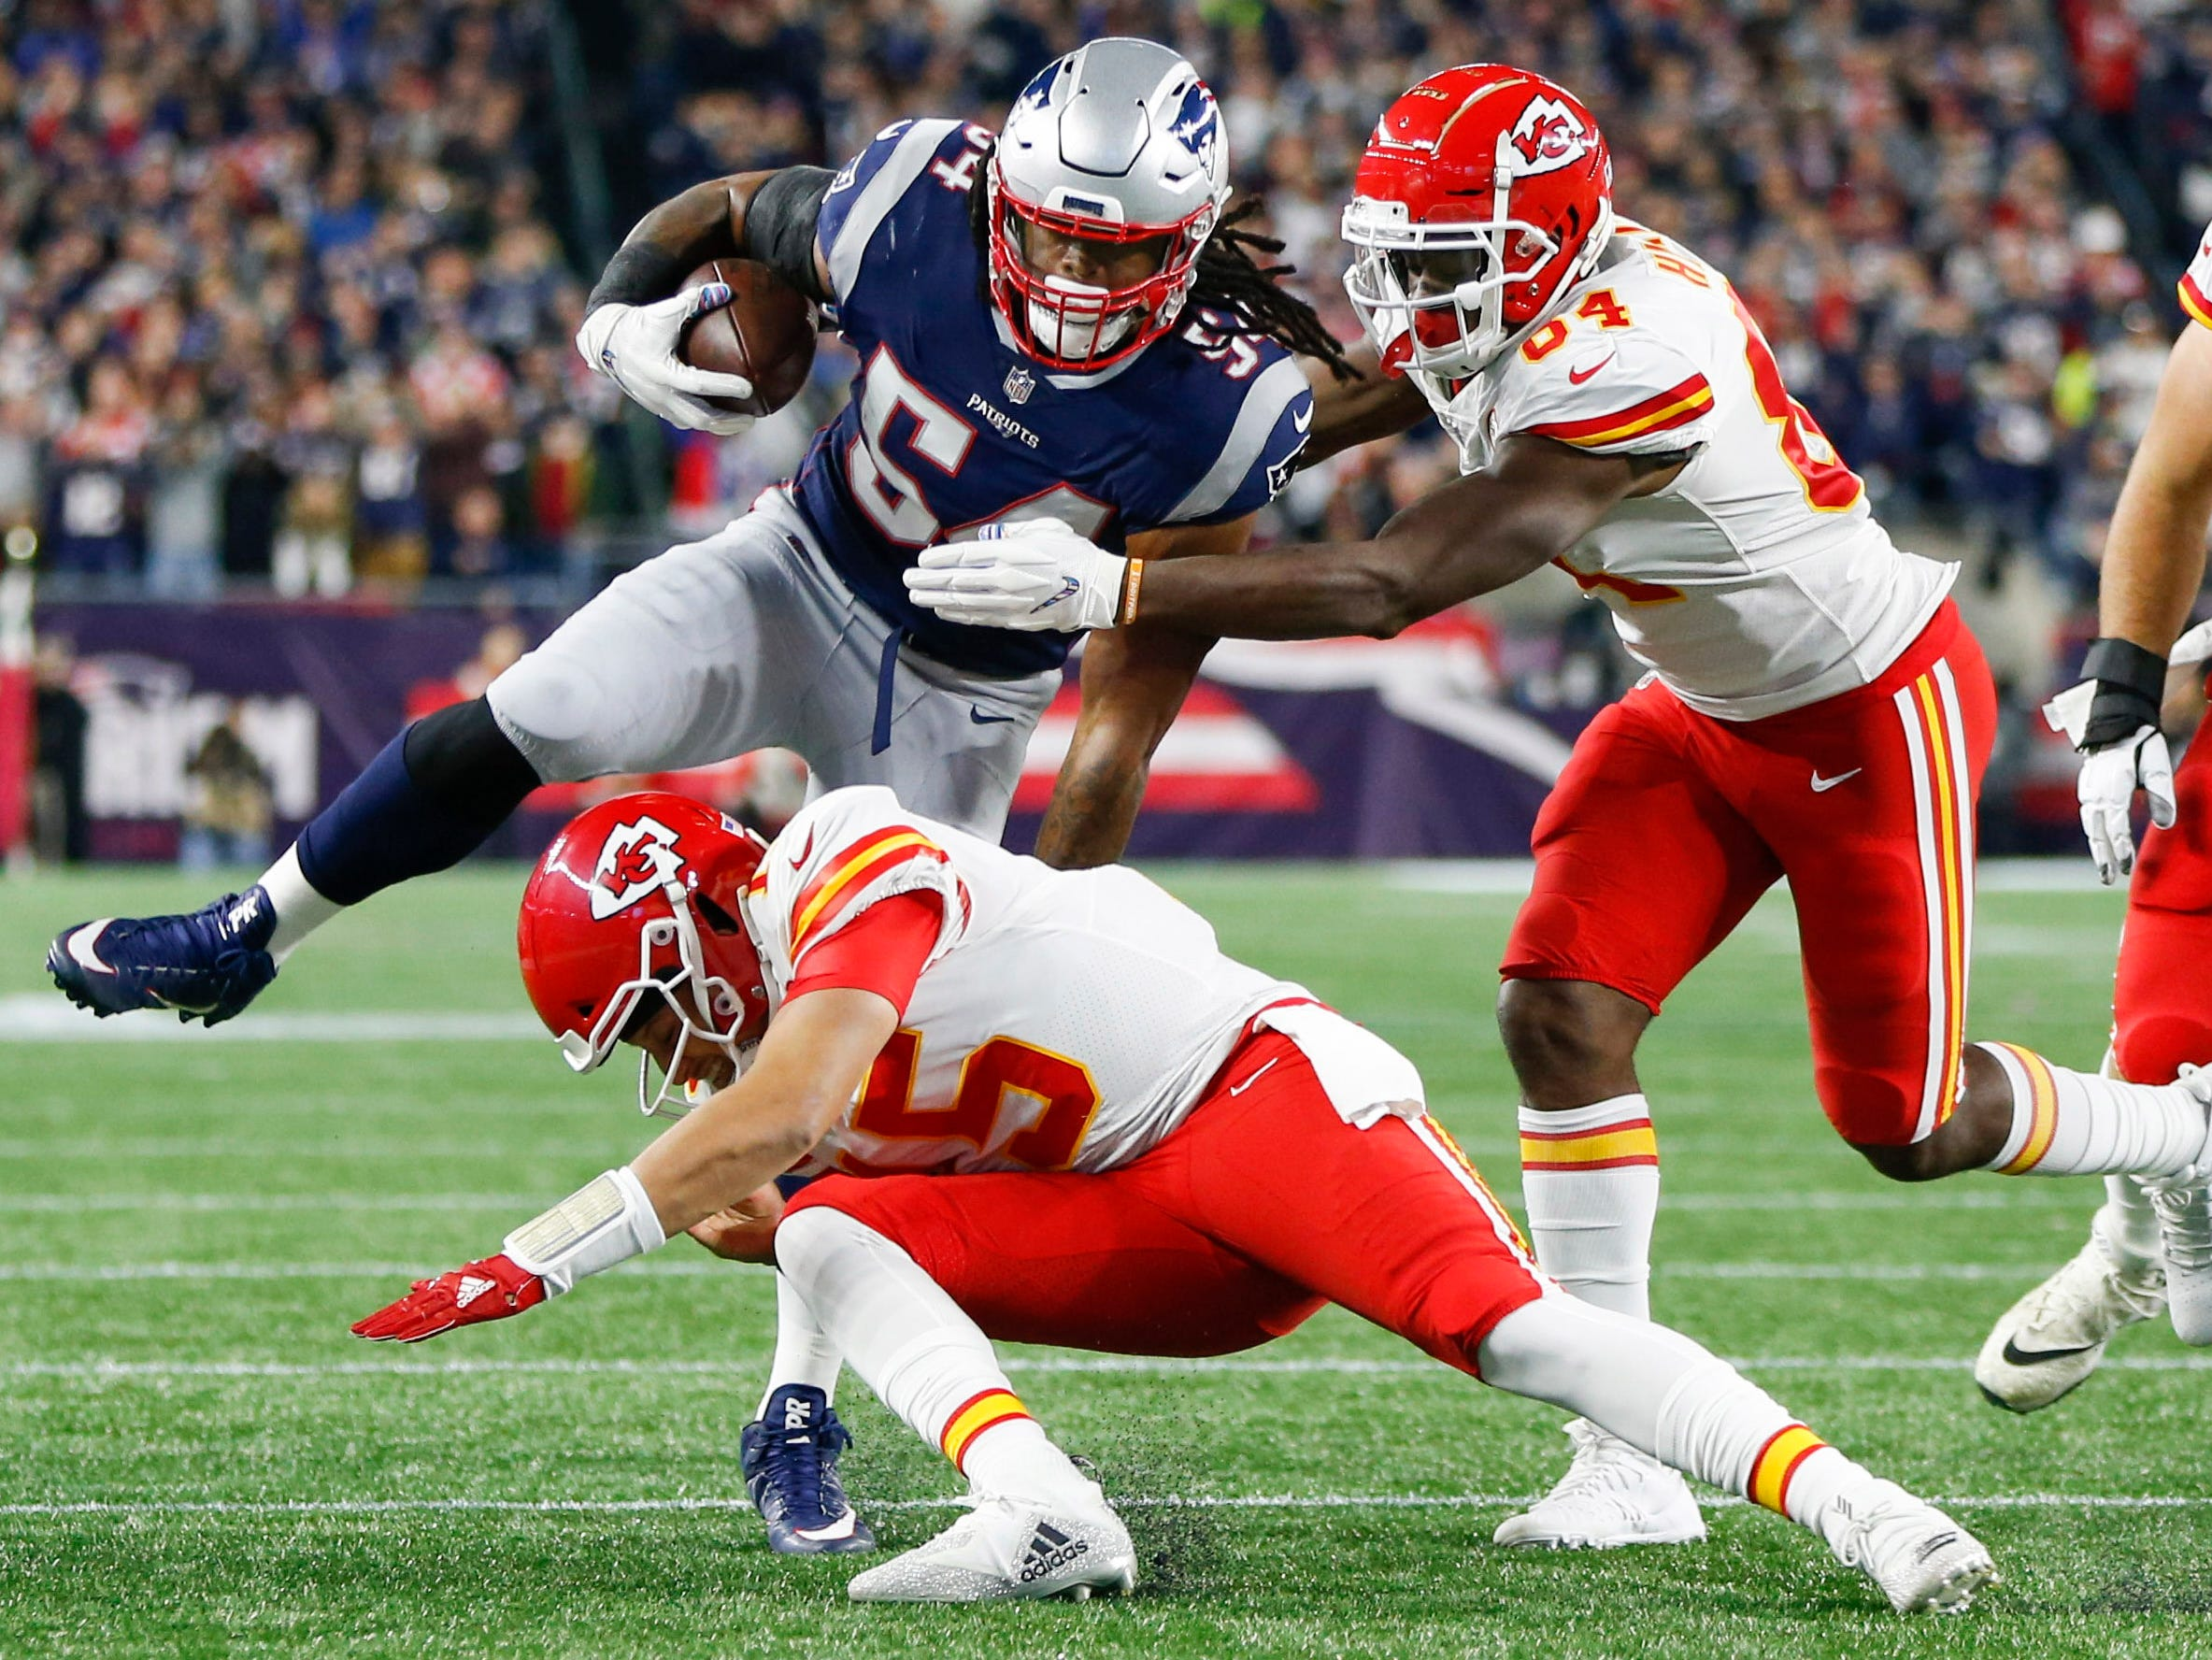 Kansas City Chiefs quarterback Patrick Mahomes attempts to tackle New England Patriots linebacker Dont'a Hightower after throwing an interception to Hightower during the first quarter at Gillette Stadium.